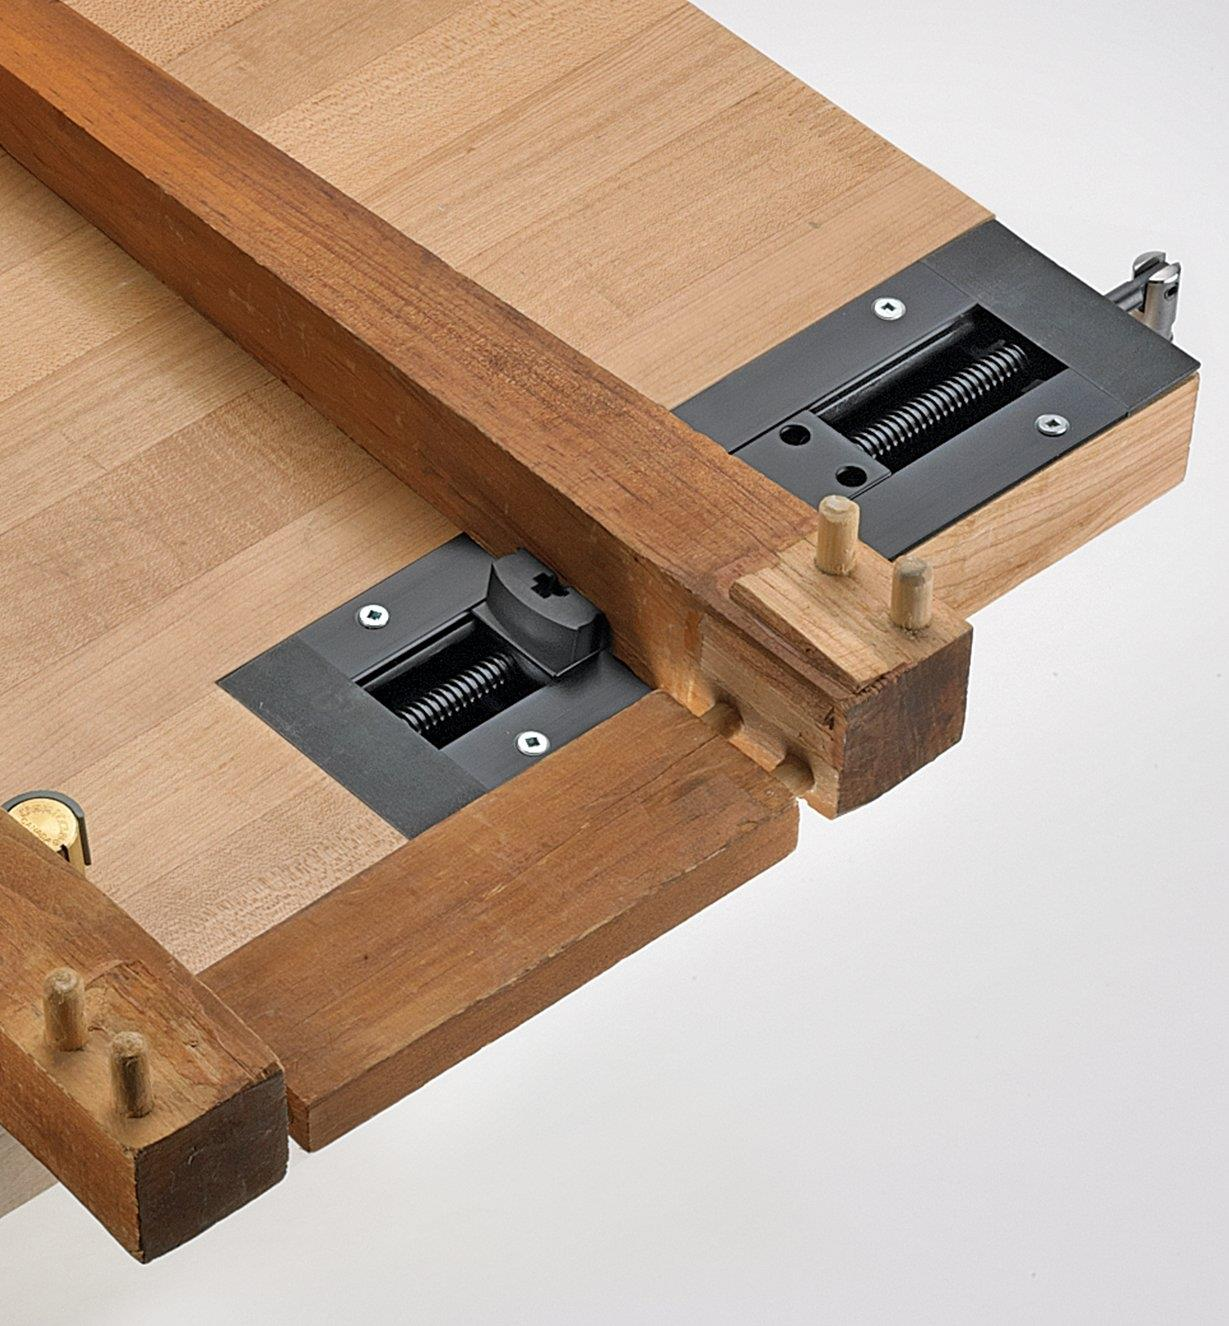 Inset vise being used to disassemble the legs of a small table